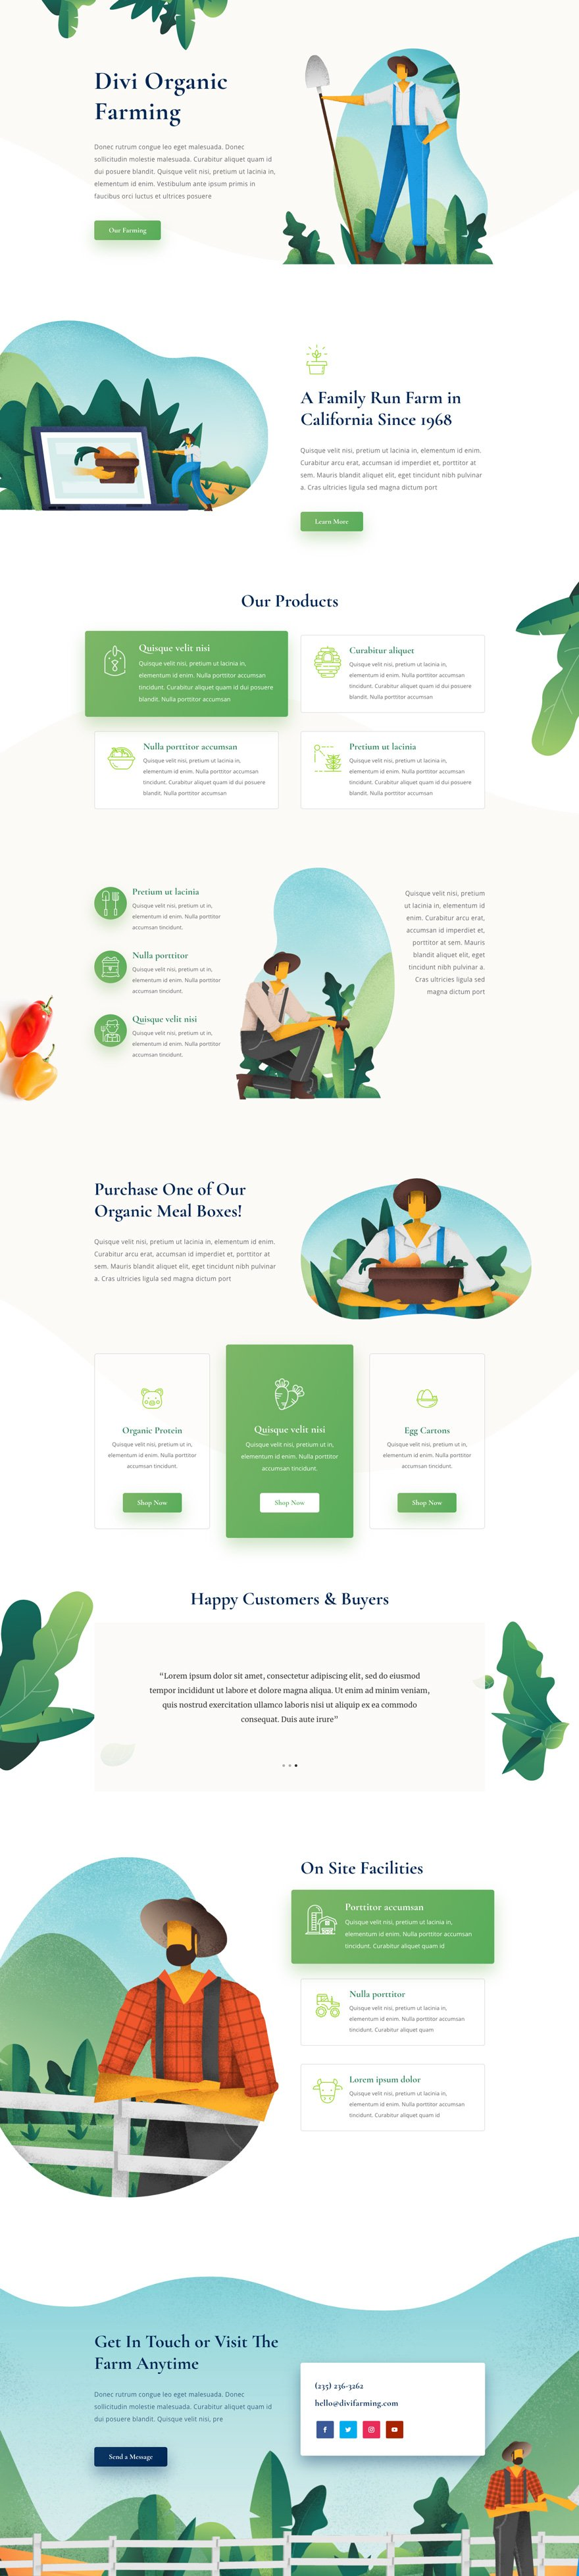 divi farmer layout pack